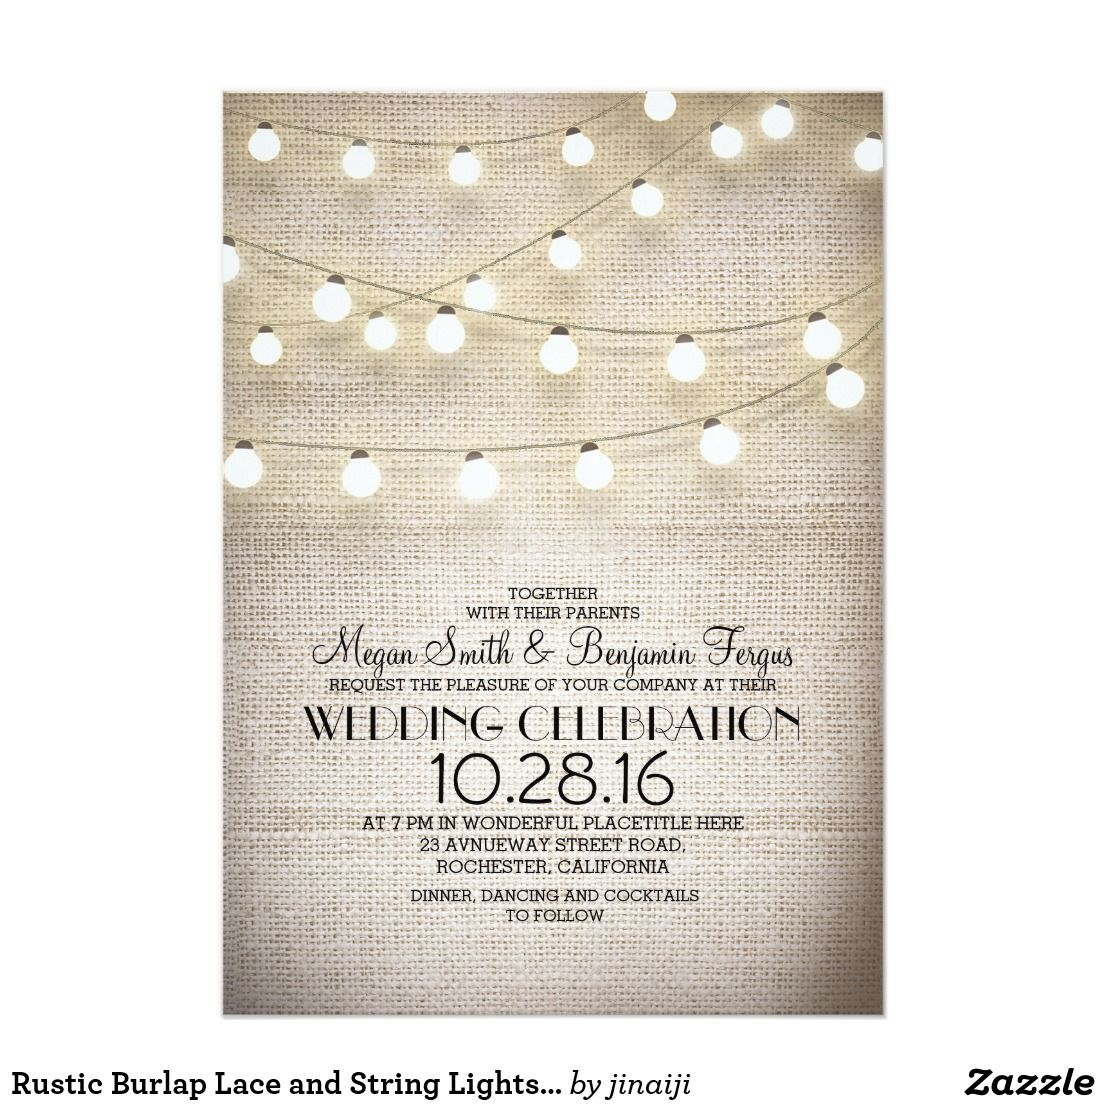 Rustic country burlap string lights lace wedding card - Rustic Burlap Lace And String Lights Wedding Card Charming Rustic Country Wedding Invitation With Vintage Burlap